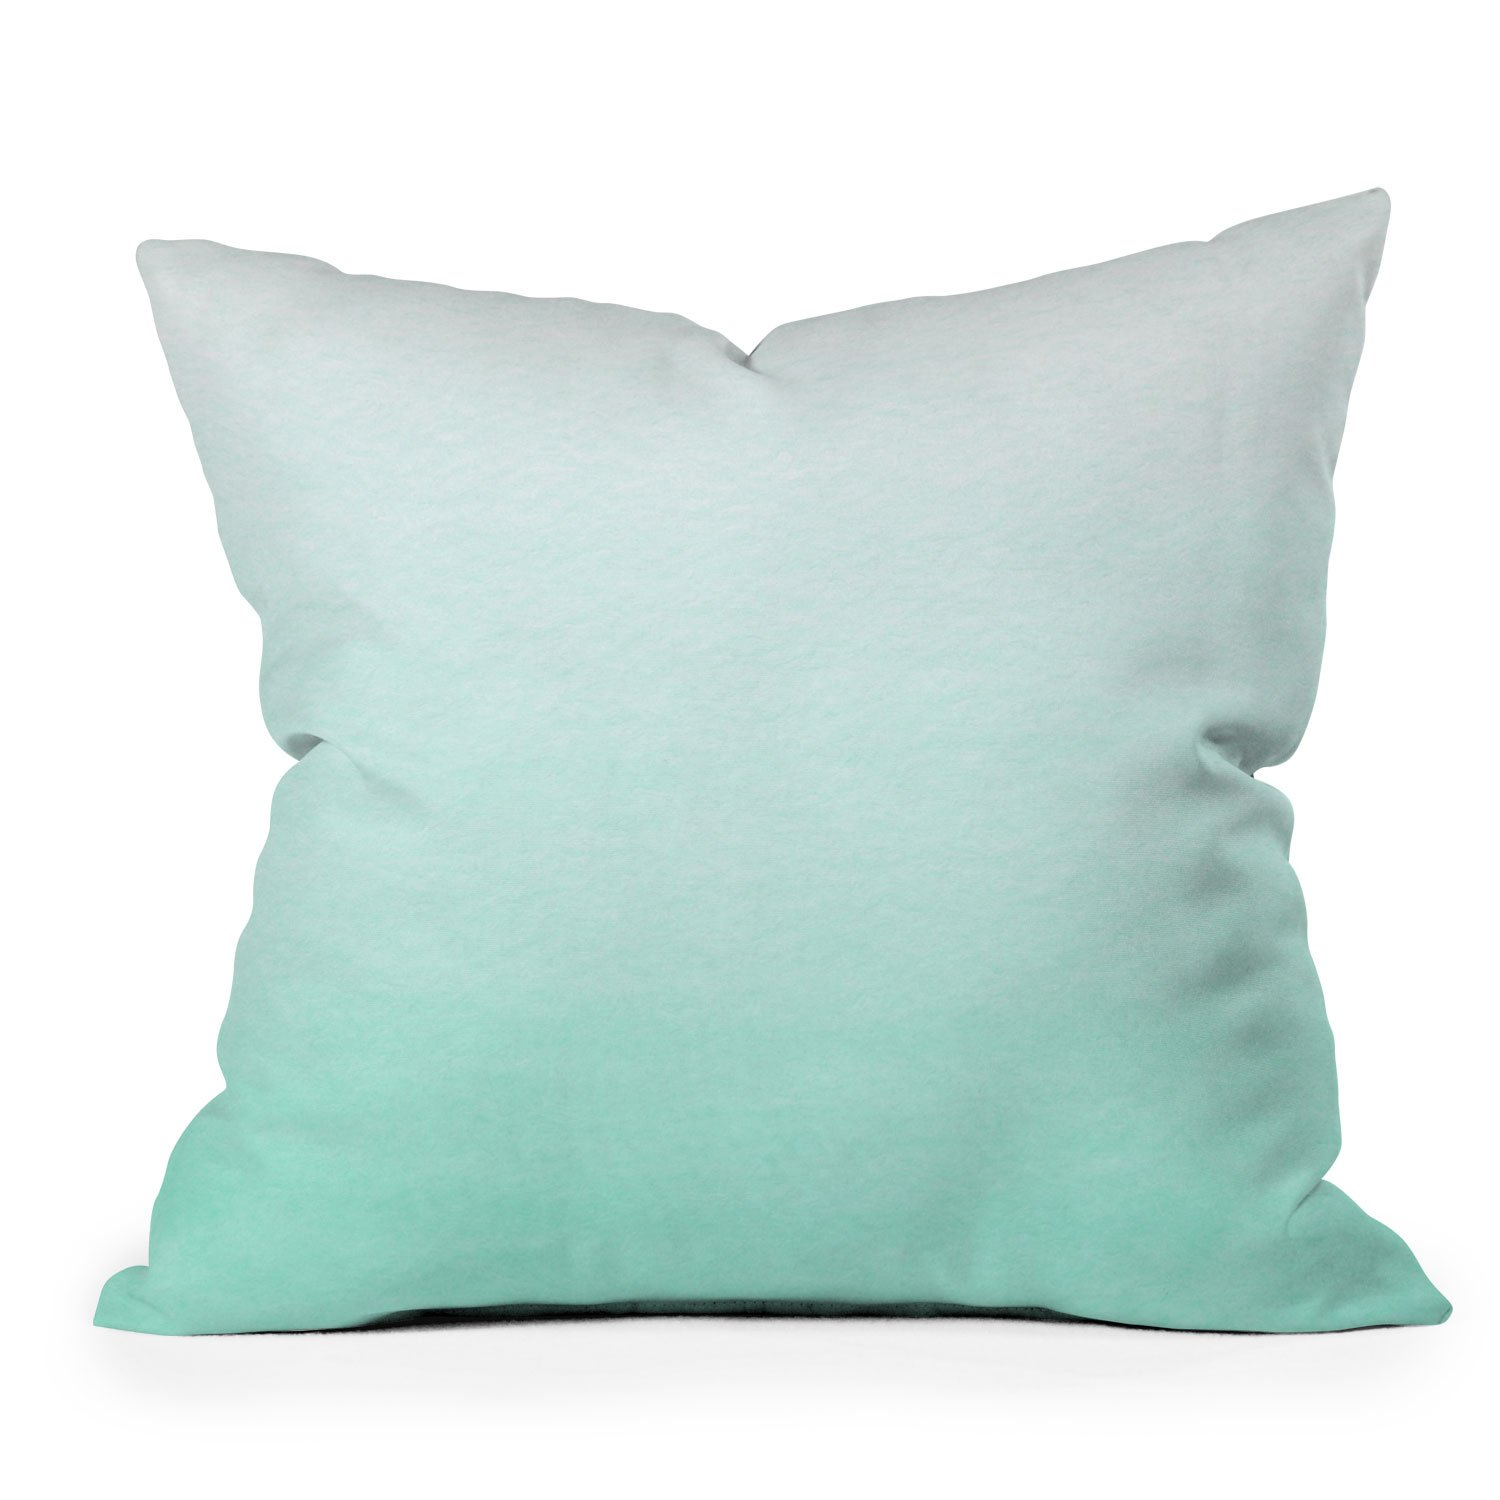 Image of Social Proper Mint Ombre Throw Pillow